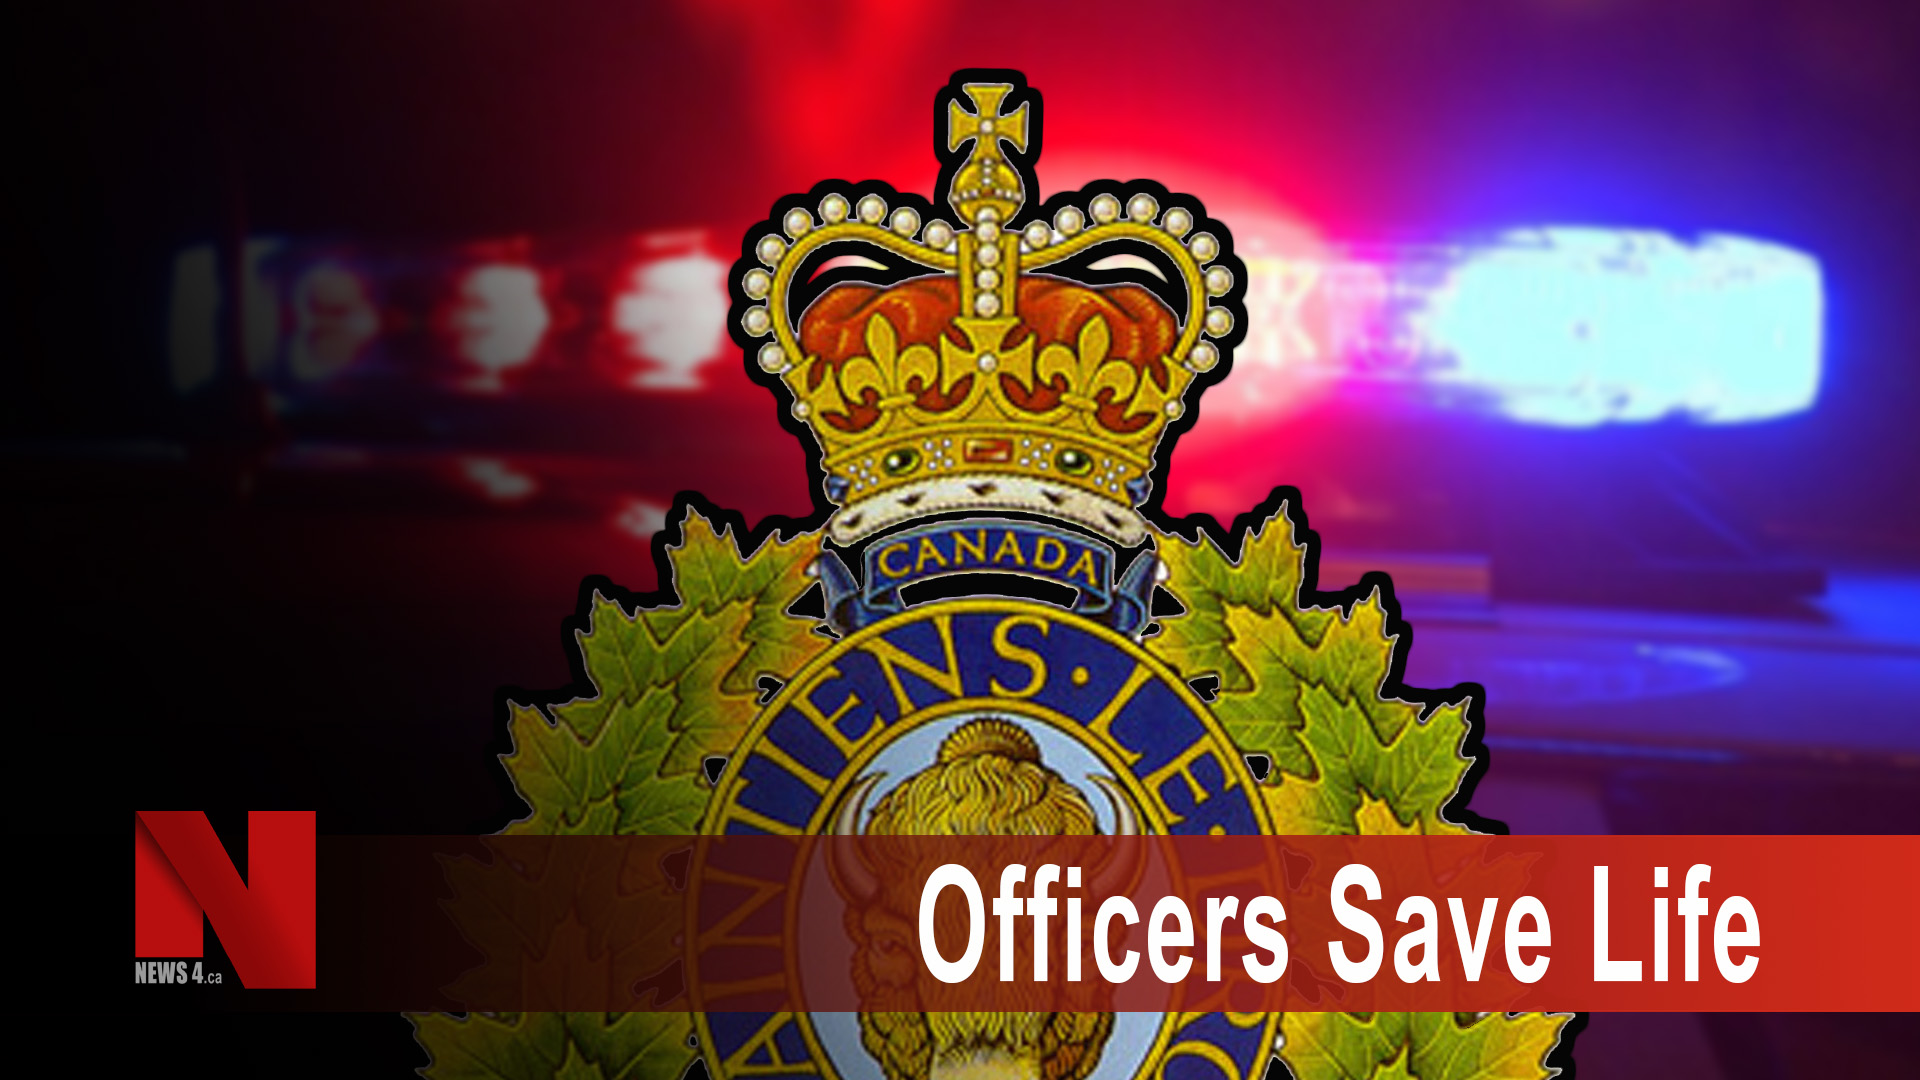 Officers Save Life